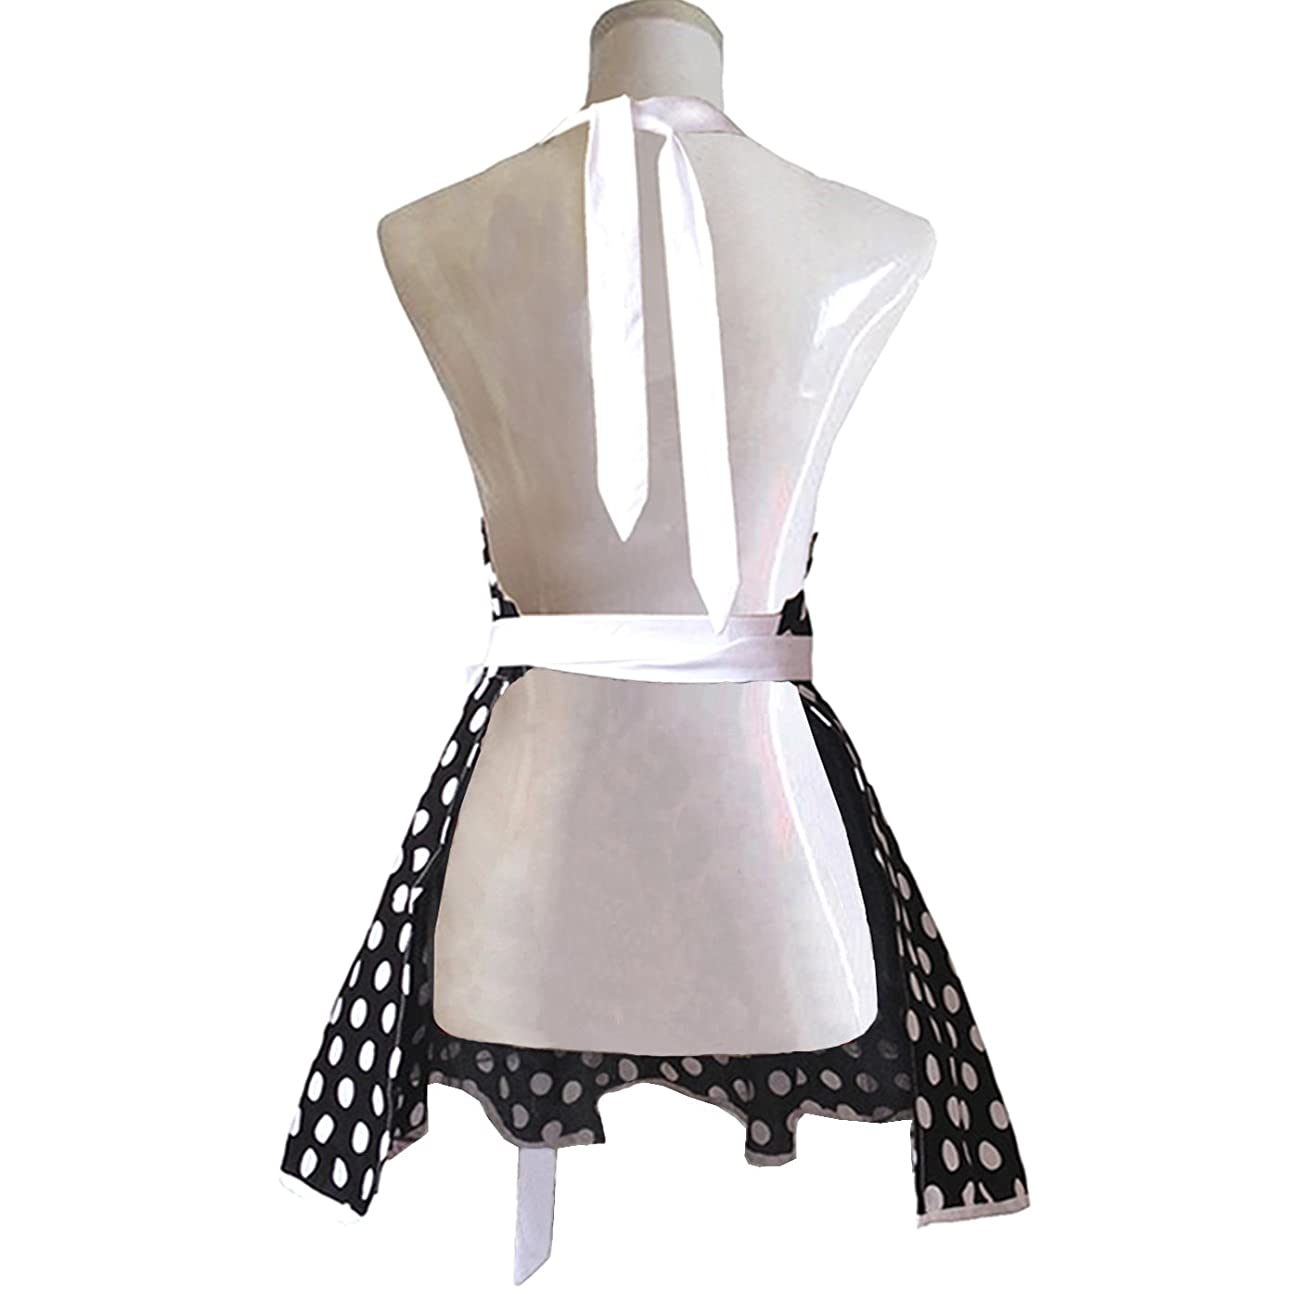 Lovely Sweetheart Black Retro Kitchen Aprons Woman Girl Cotton Polka Dot Cooking Salon Pinafore Vintage Apron Dress Gift 3